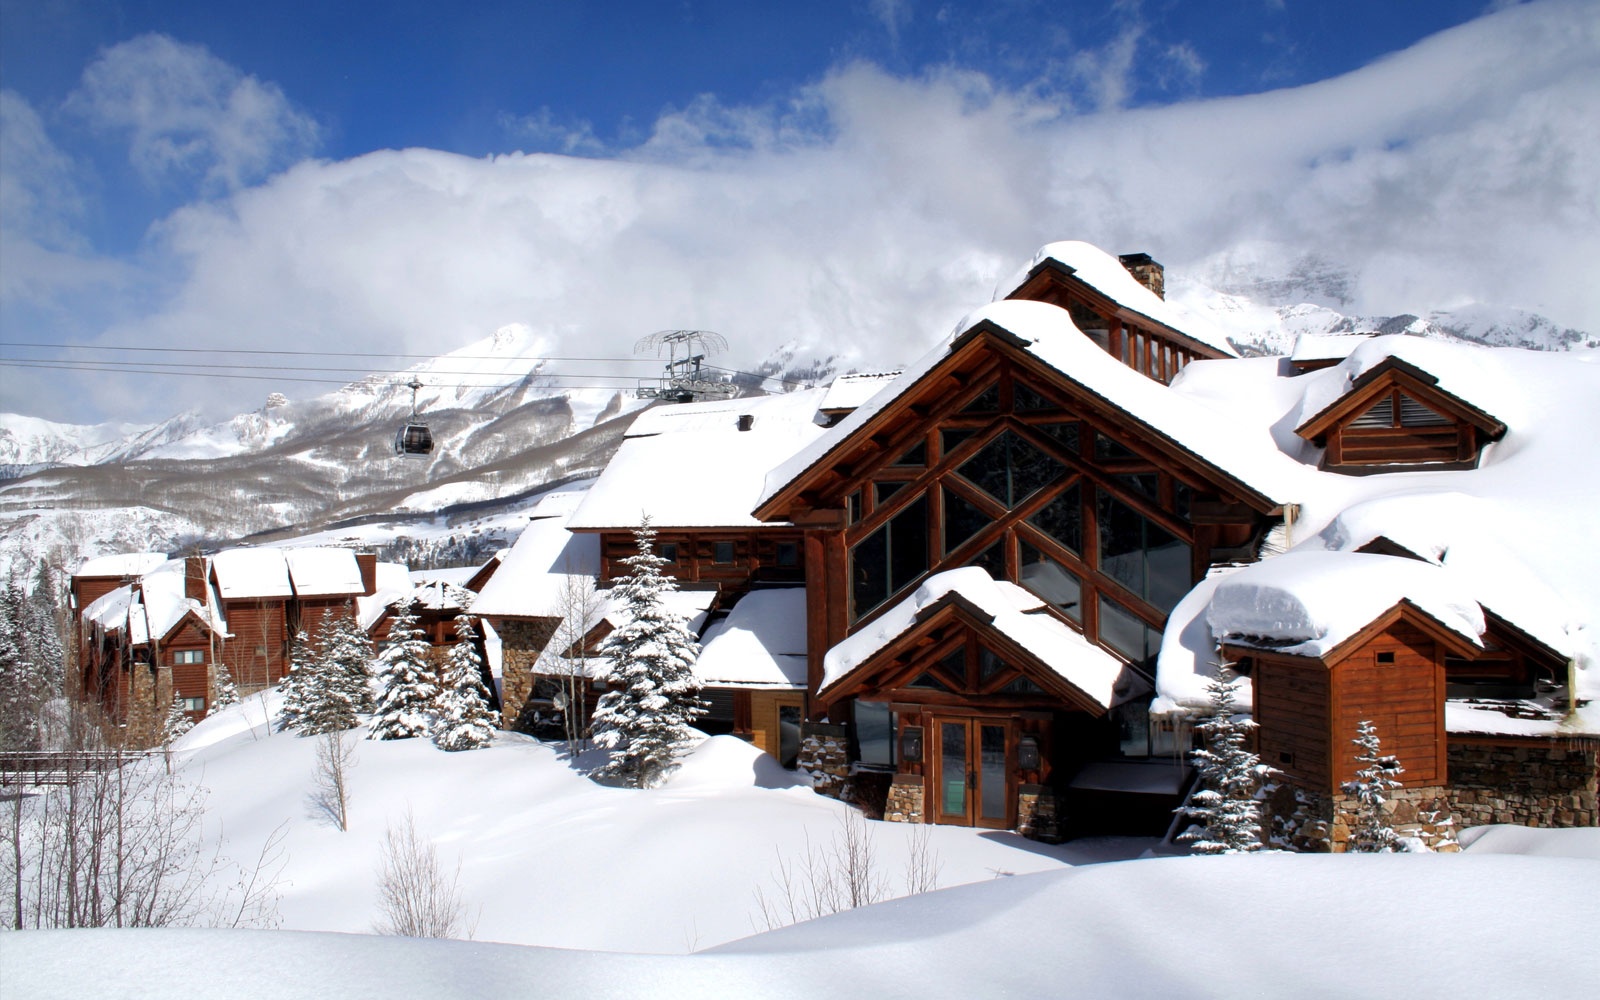 Upscale telluride co hotel reservations mountain lodge for Ski cabins in colorado